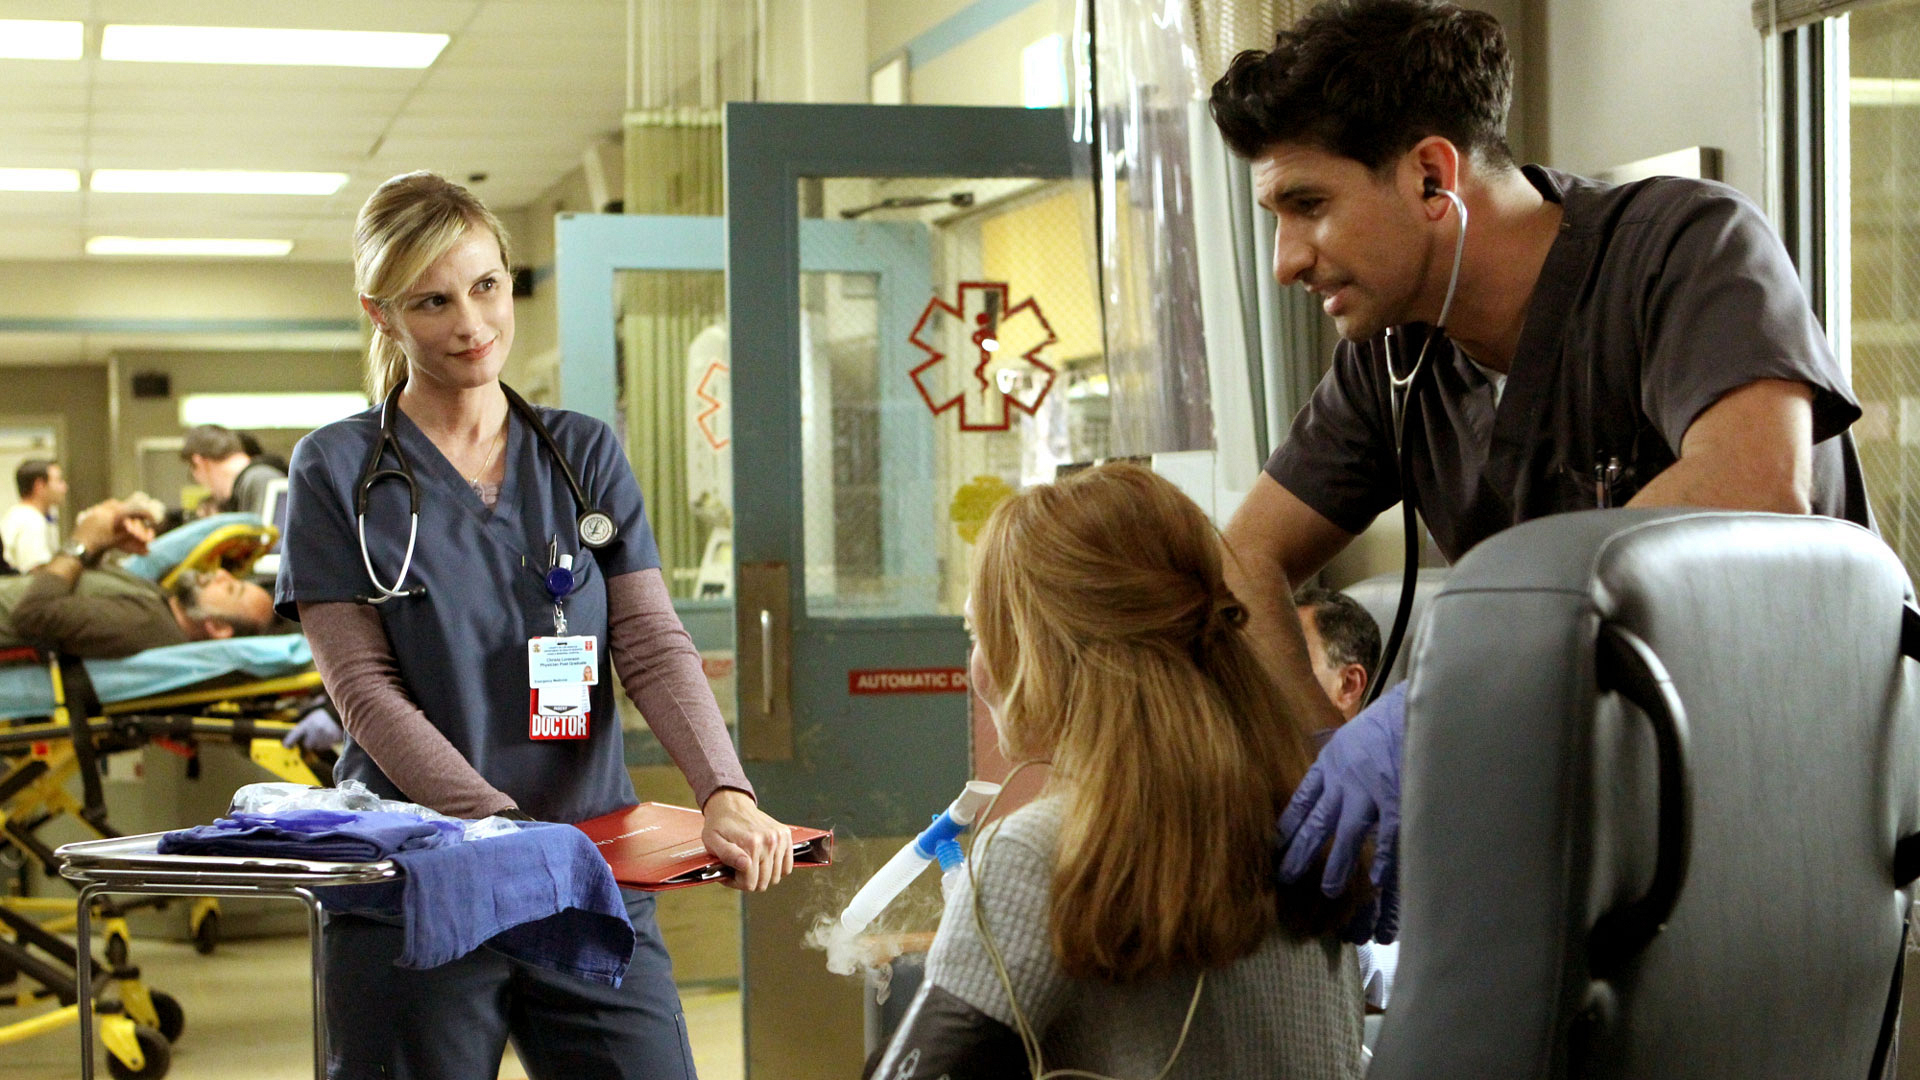 Bonnie Somerville as Dr. Christa Lorenson and Raza Jaffrey as Dr. Neal Hudson